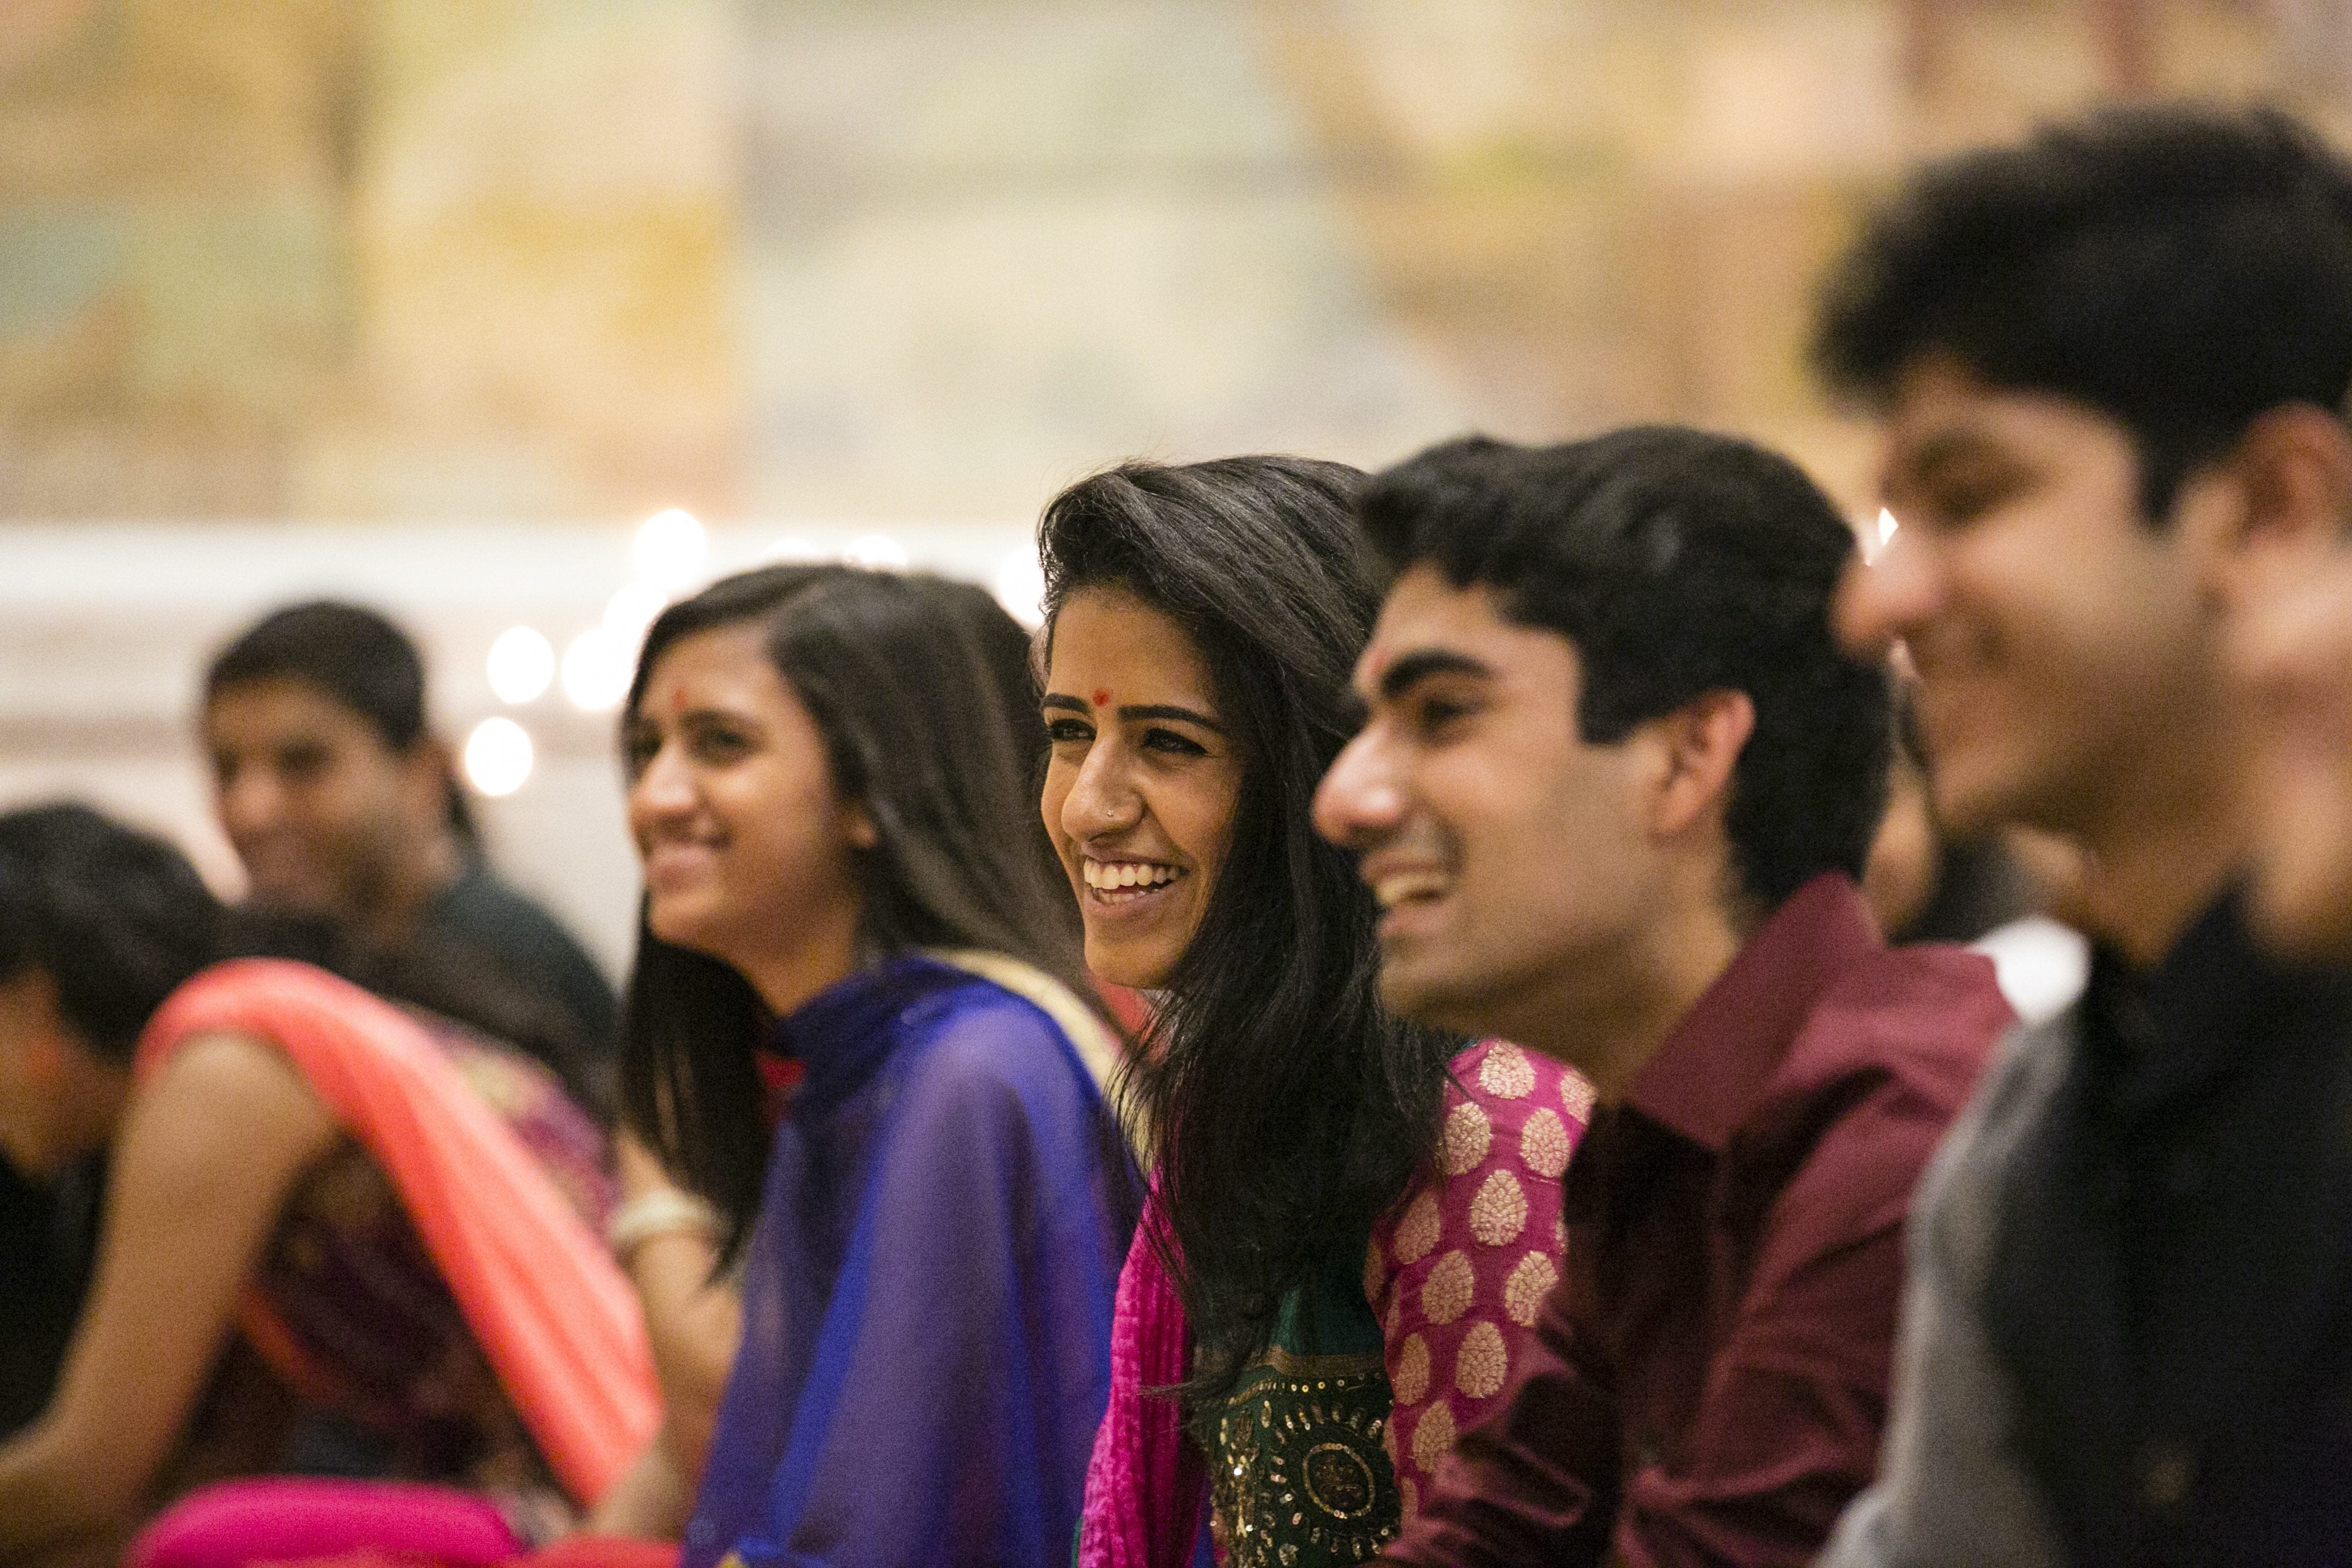 Six Hindu students face an altar off camera and smile